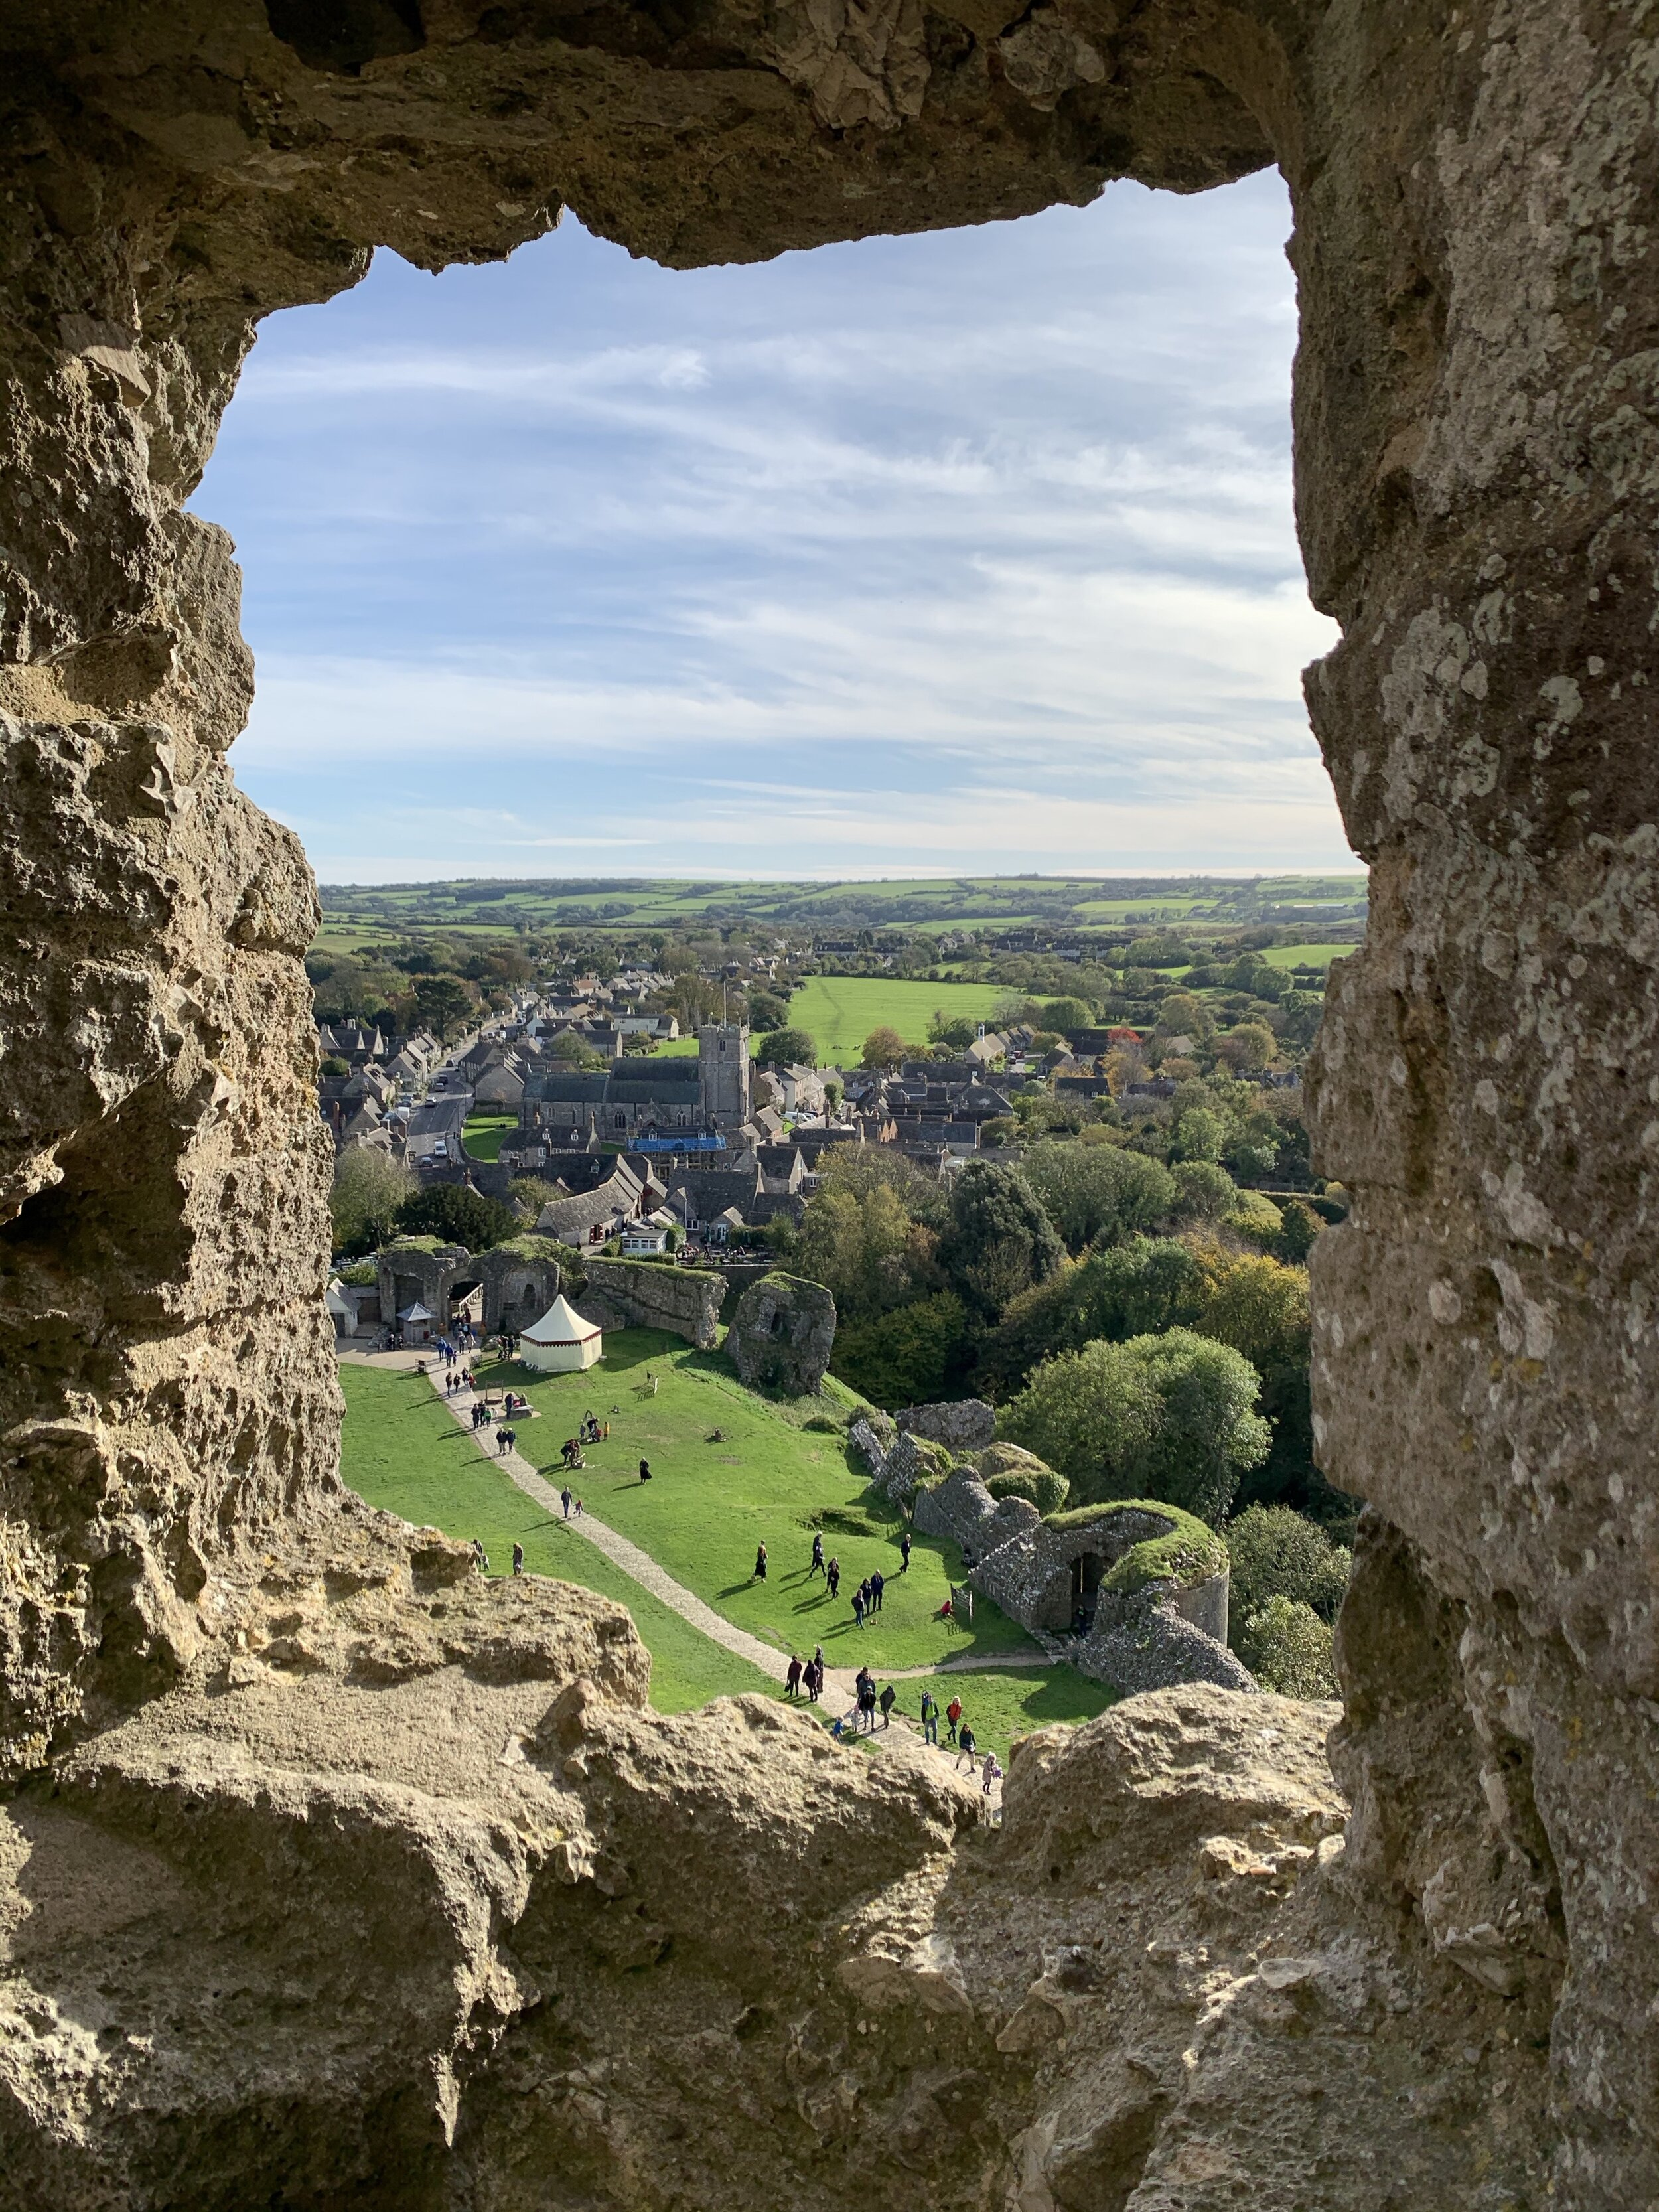 The views from the castle are spectacular